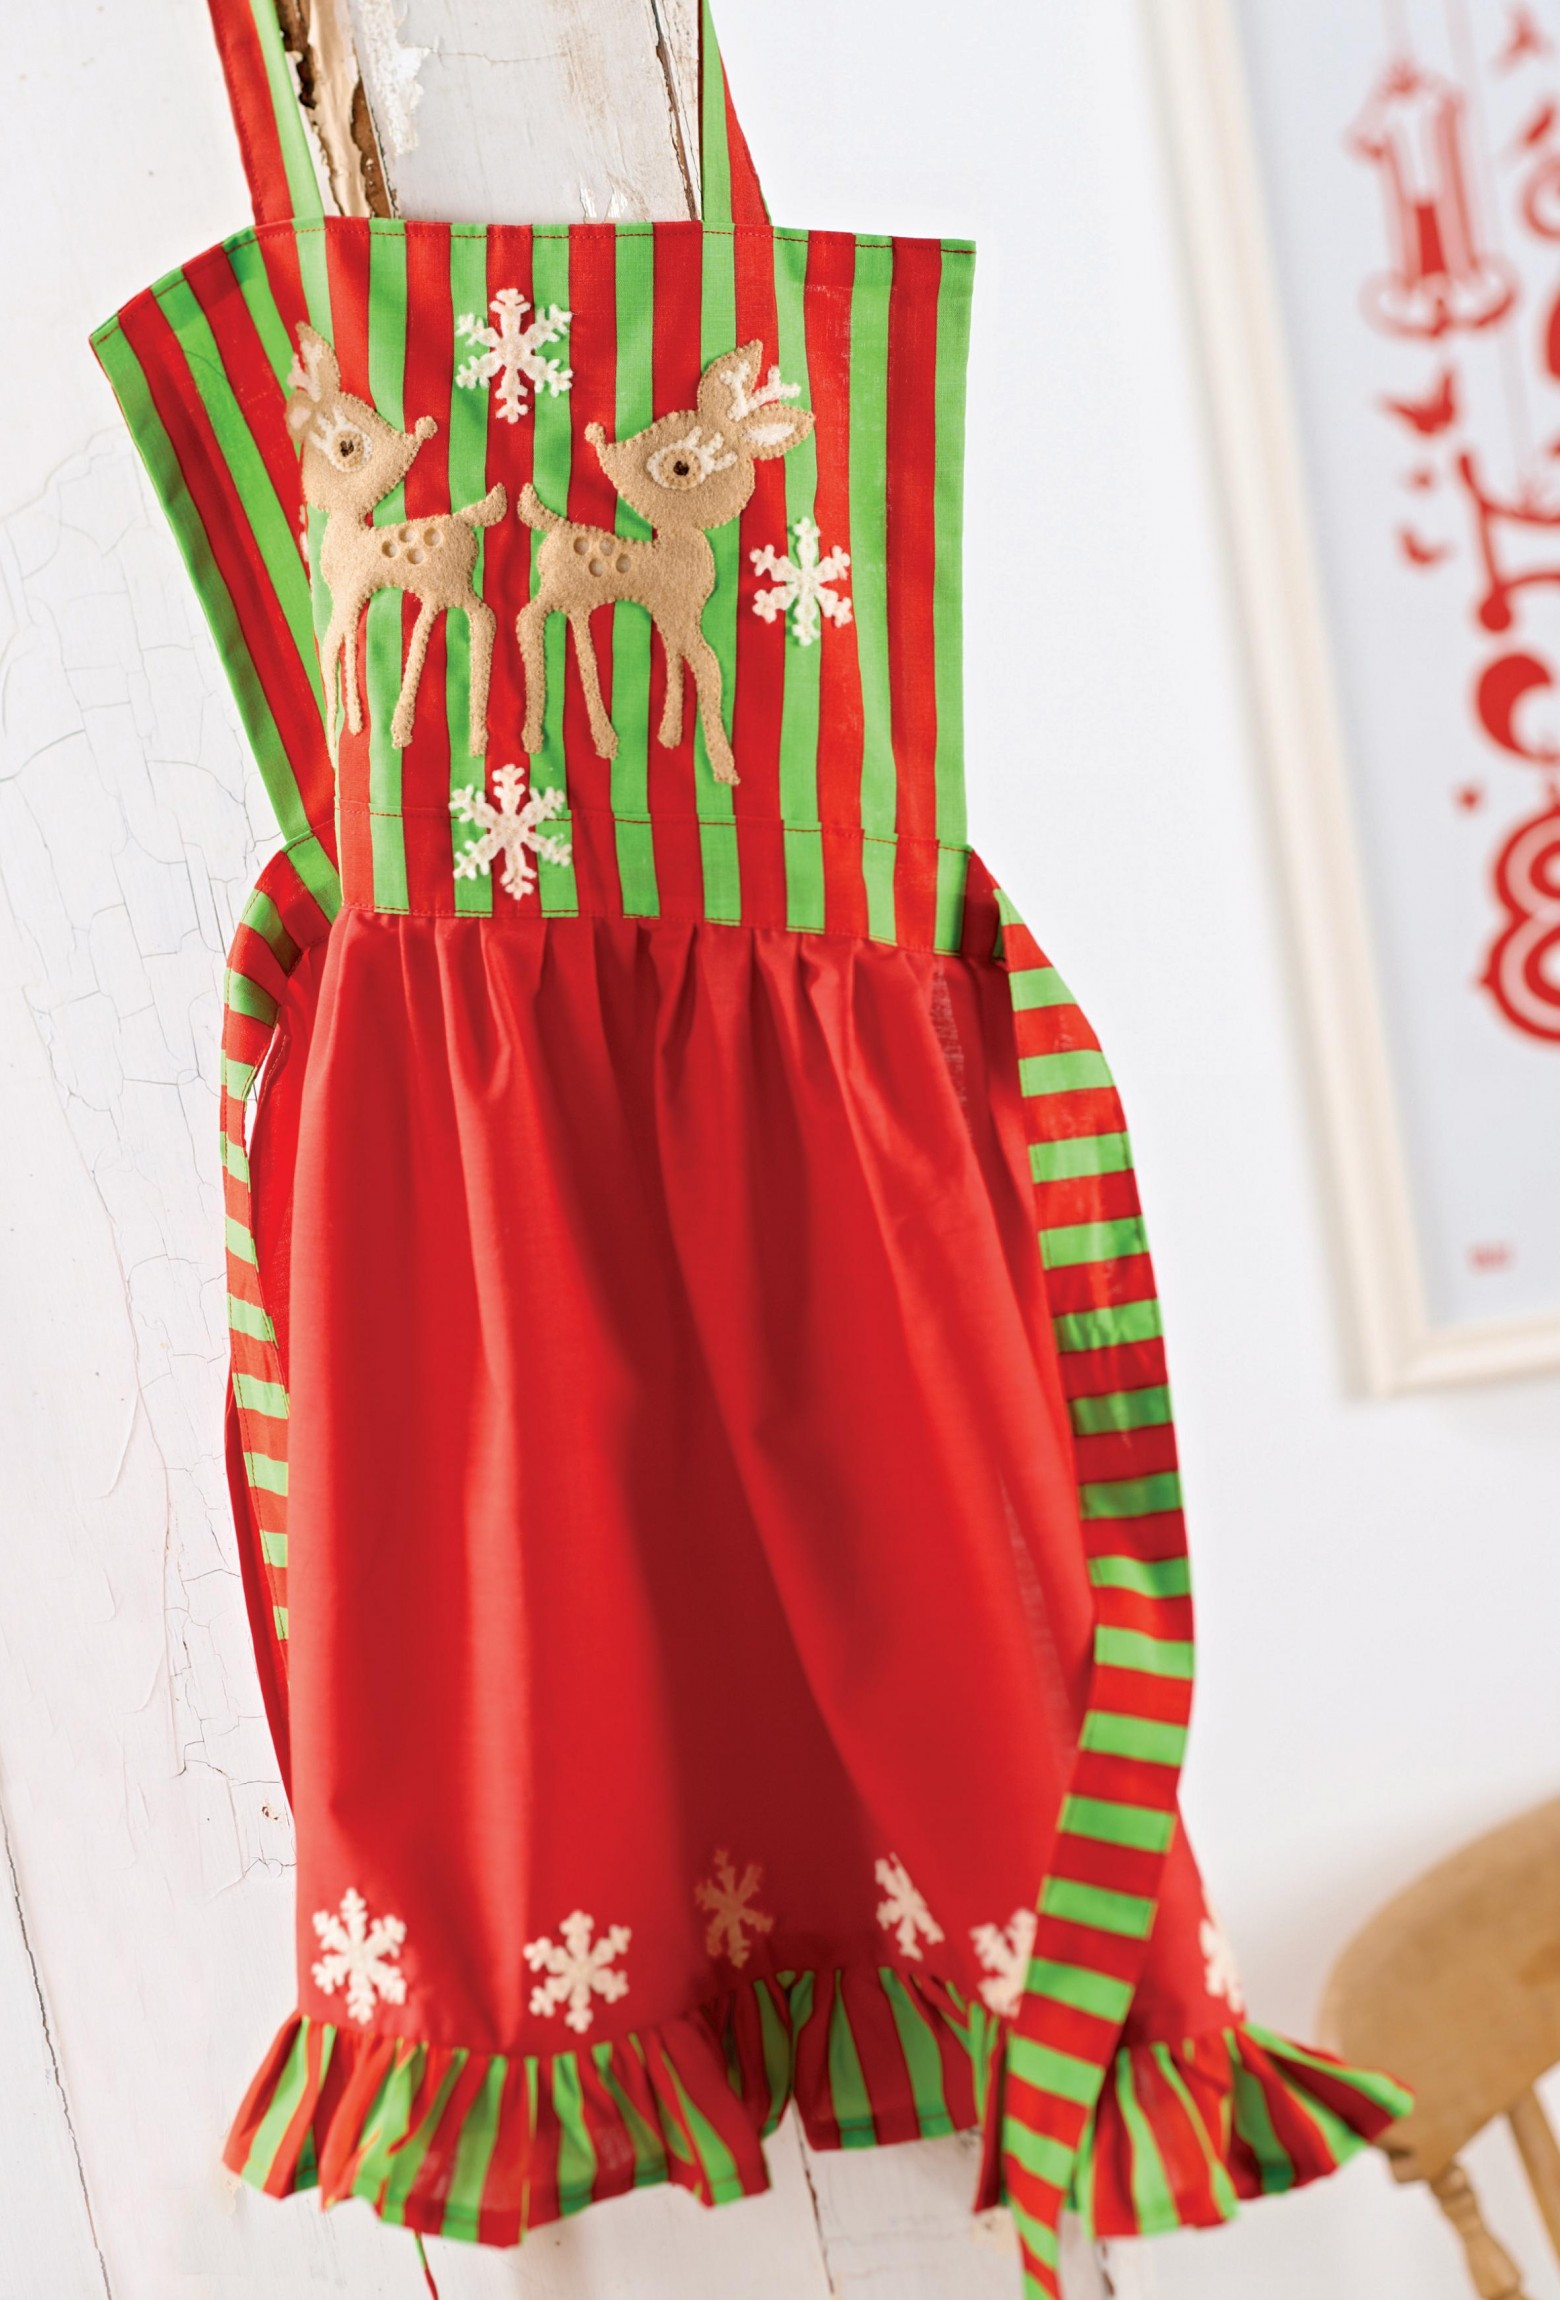 Festive Reindeer Apron Free Sewing Patterns Sew Magazine